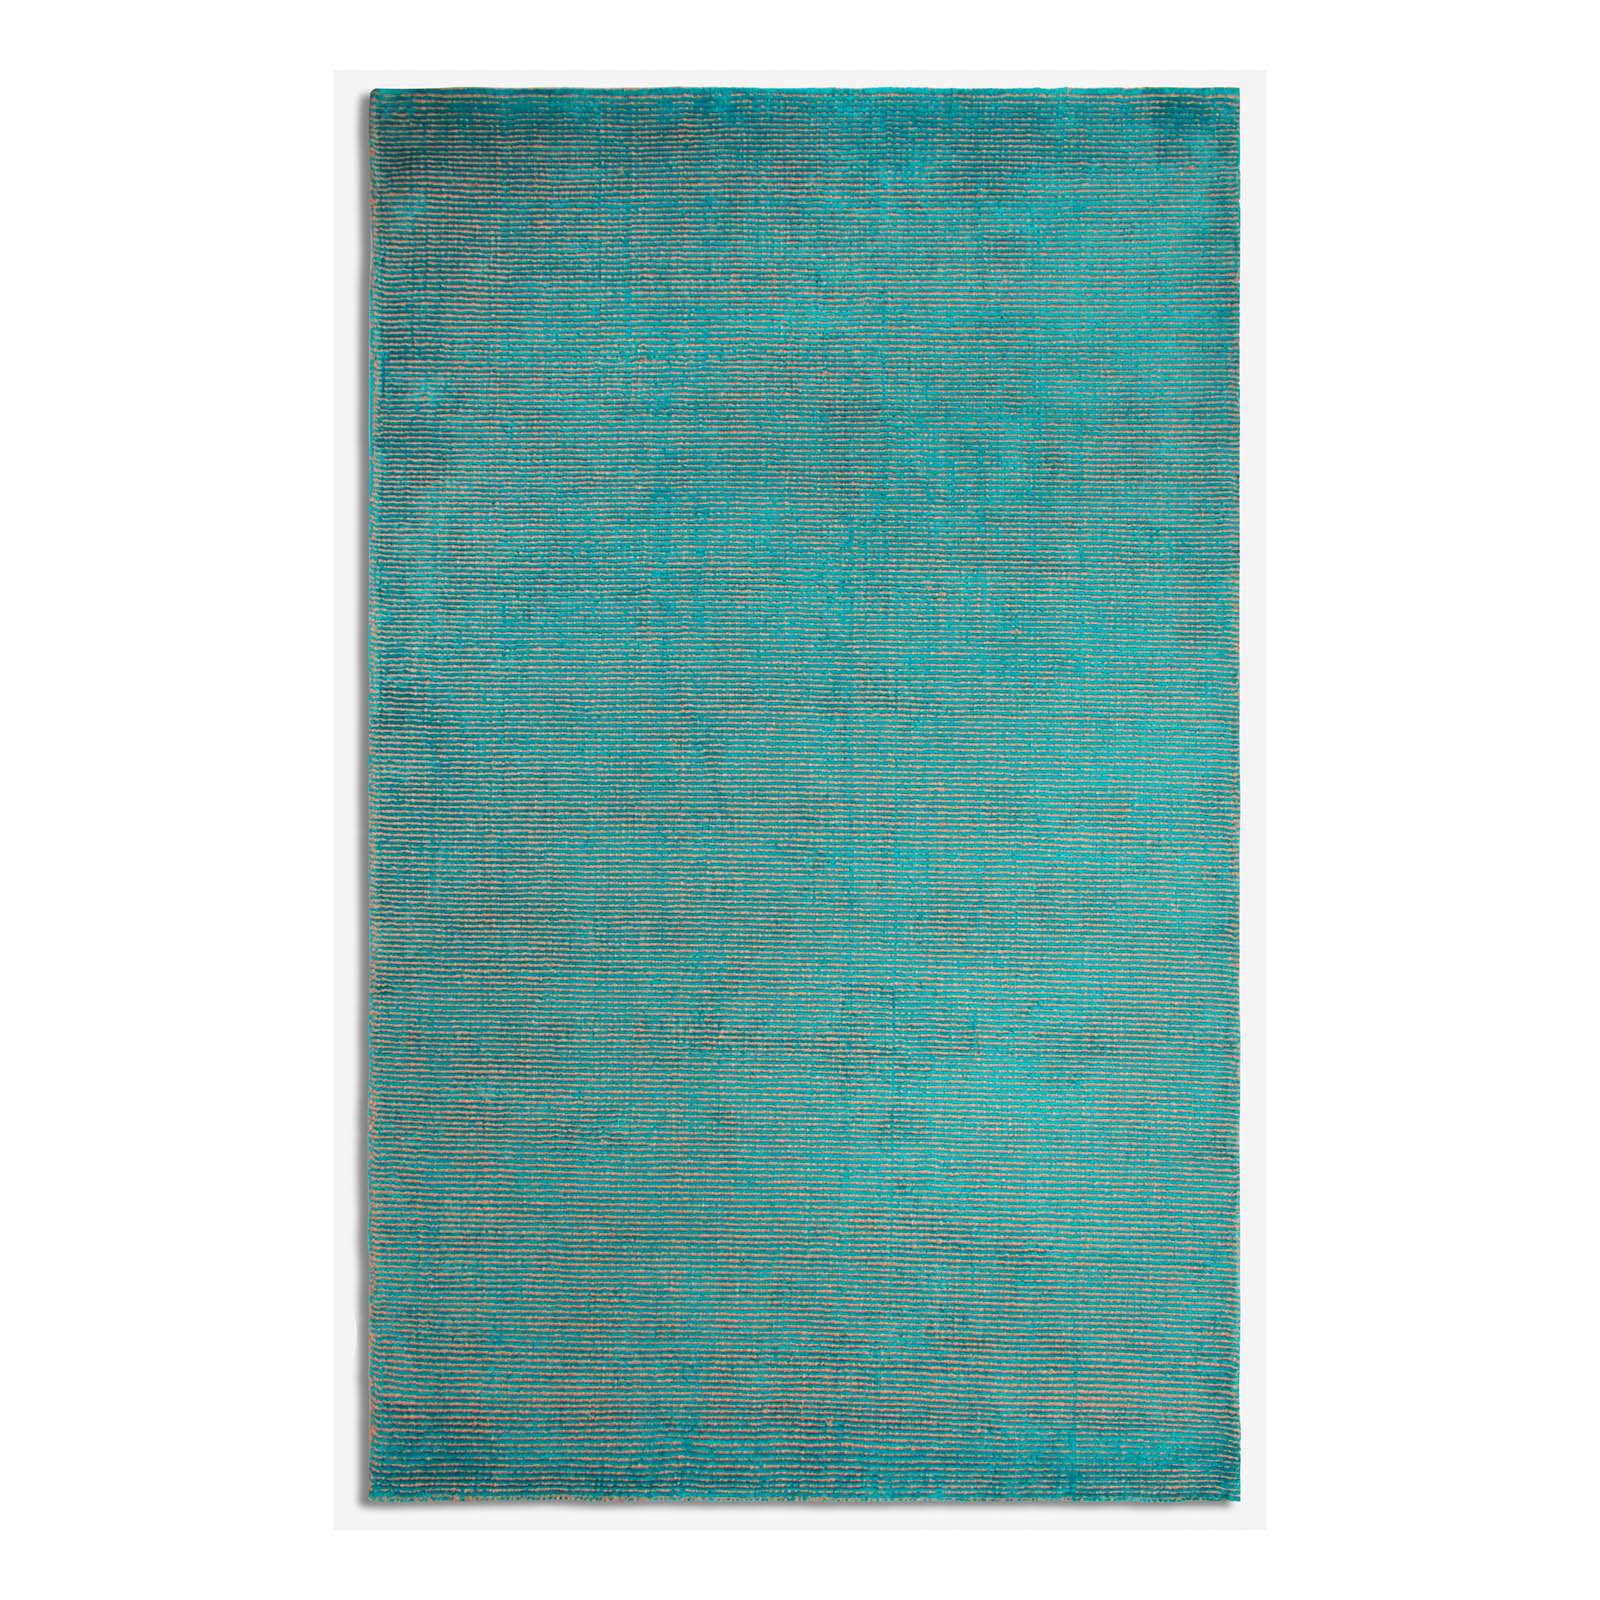 Plantation Oceans Rugs OCE04 in Turquoise